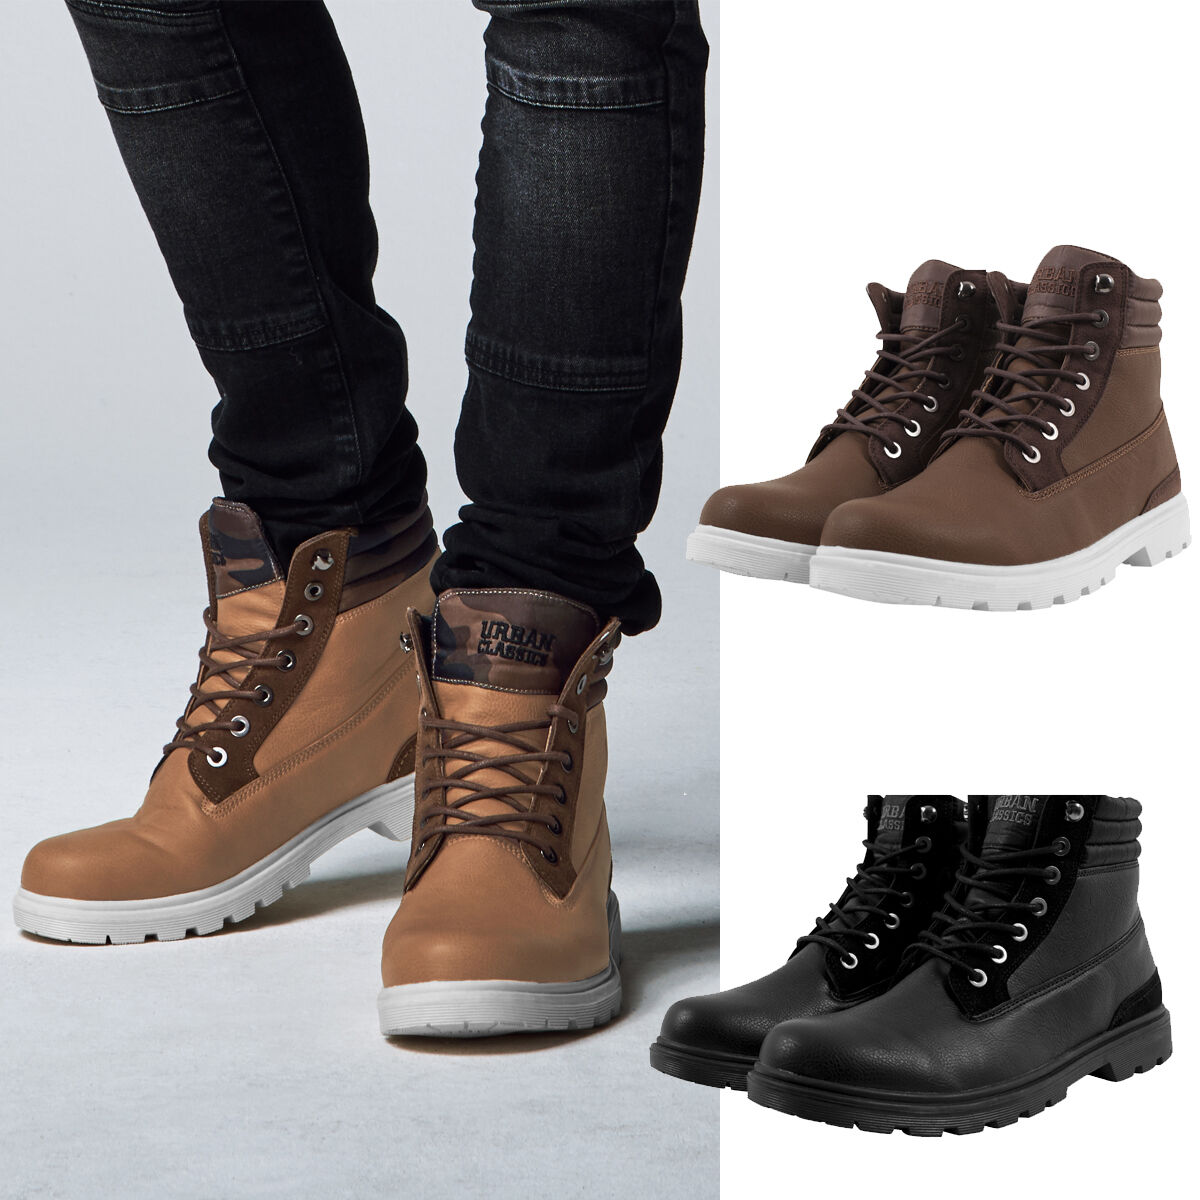 Urban Classics Winter Boots Outdoor Ankle Boots Hiking Winter Boots